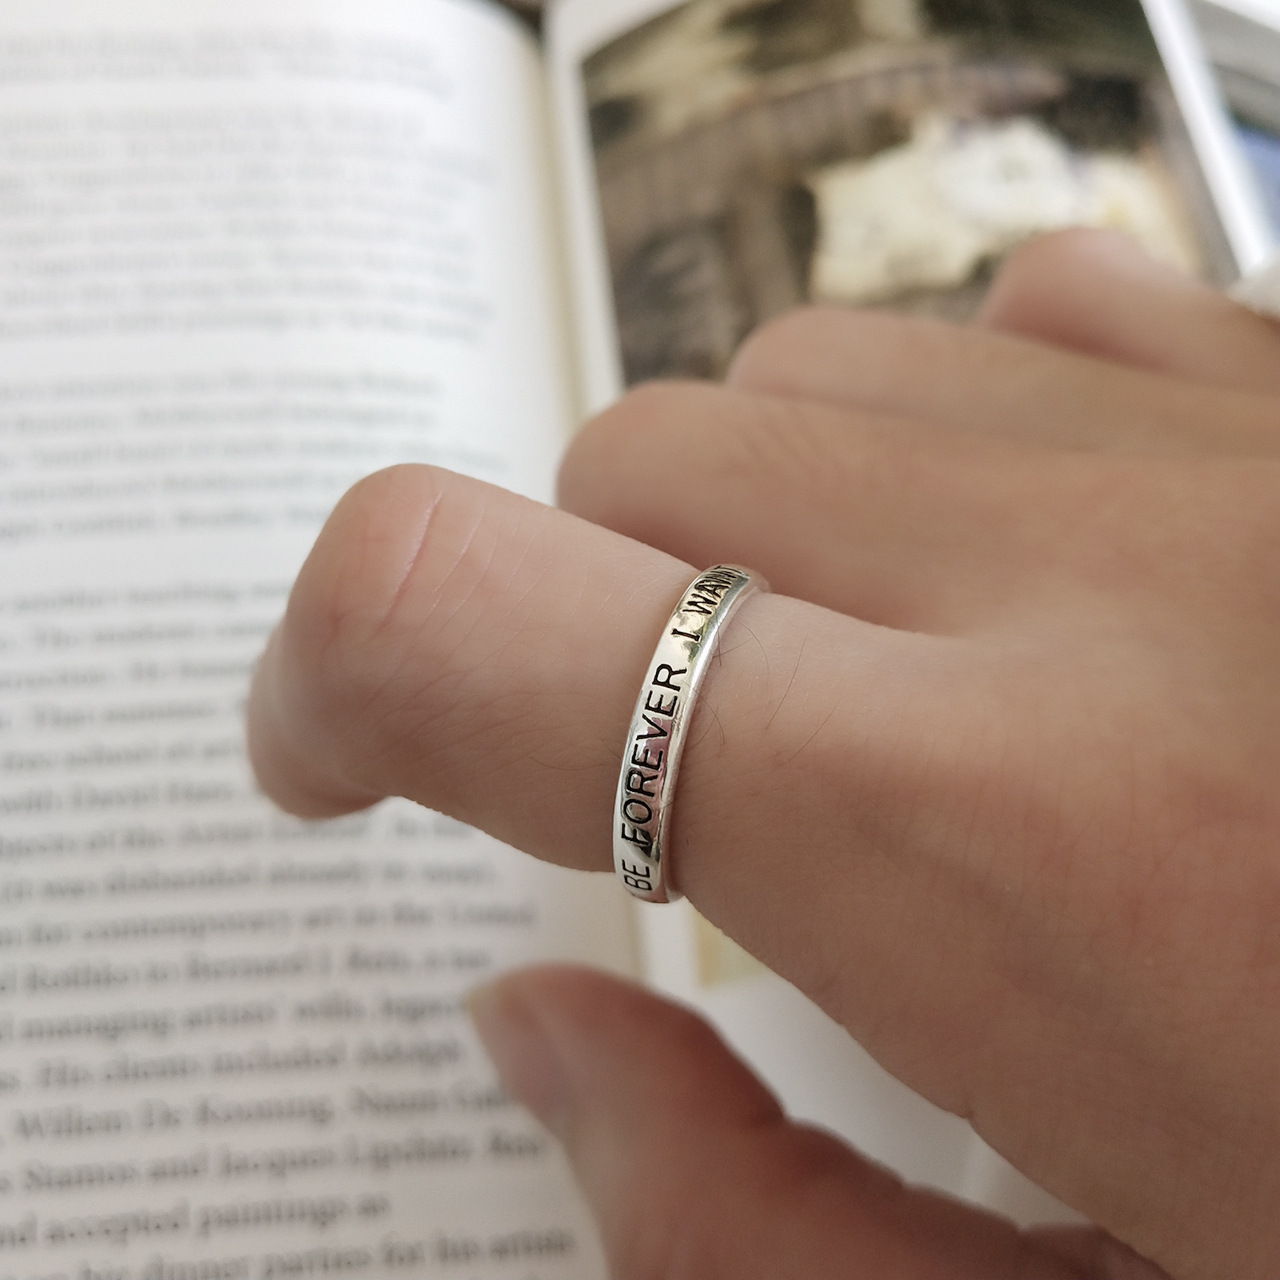 925 Sterling Silver Ring FOREVER Letters Opening Ring To Do Old Vintage Style Ring For Woman Fashion Jewelry Thumb Ring